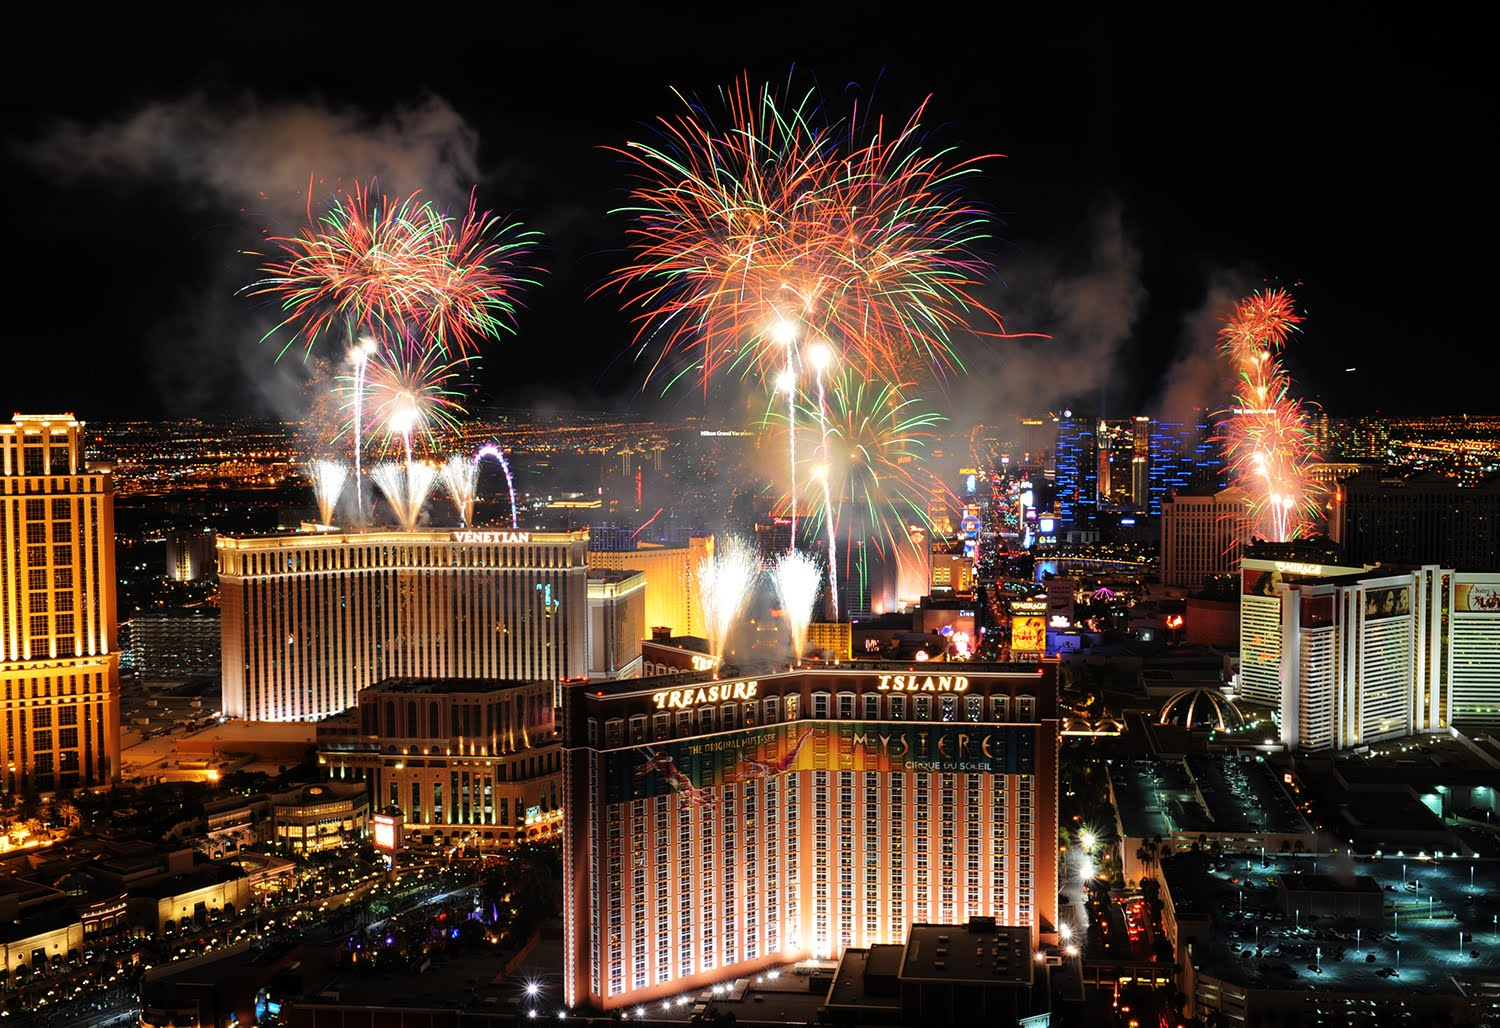 July 4th Holiday Expected To Attract 330k Visitors To Las